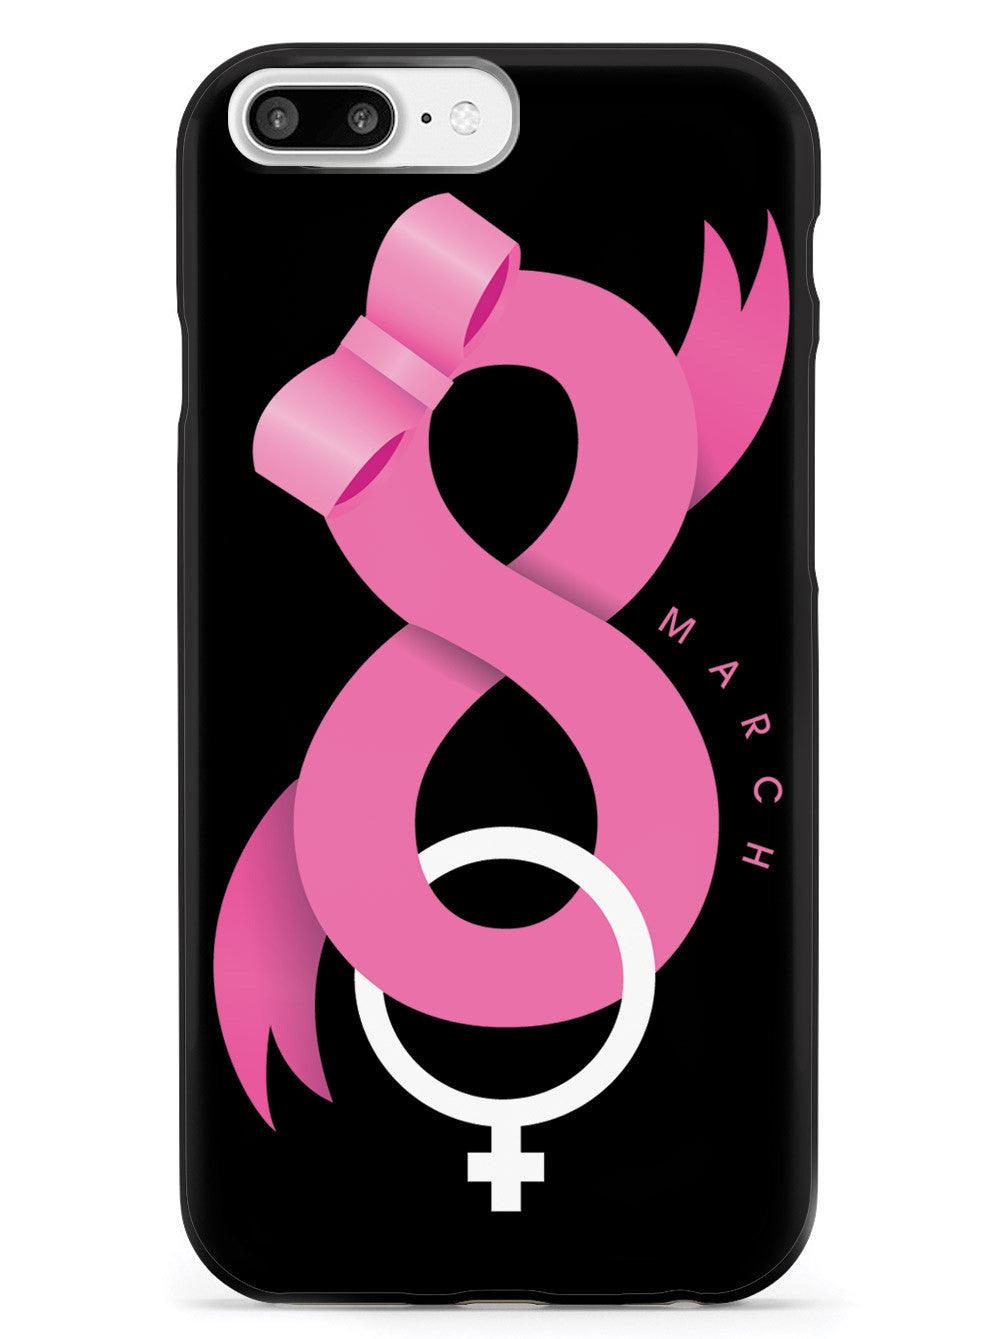 Women's Day - March 8 - Pink Ribbon - Black Case